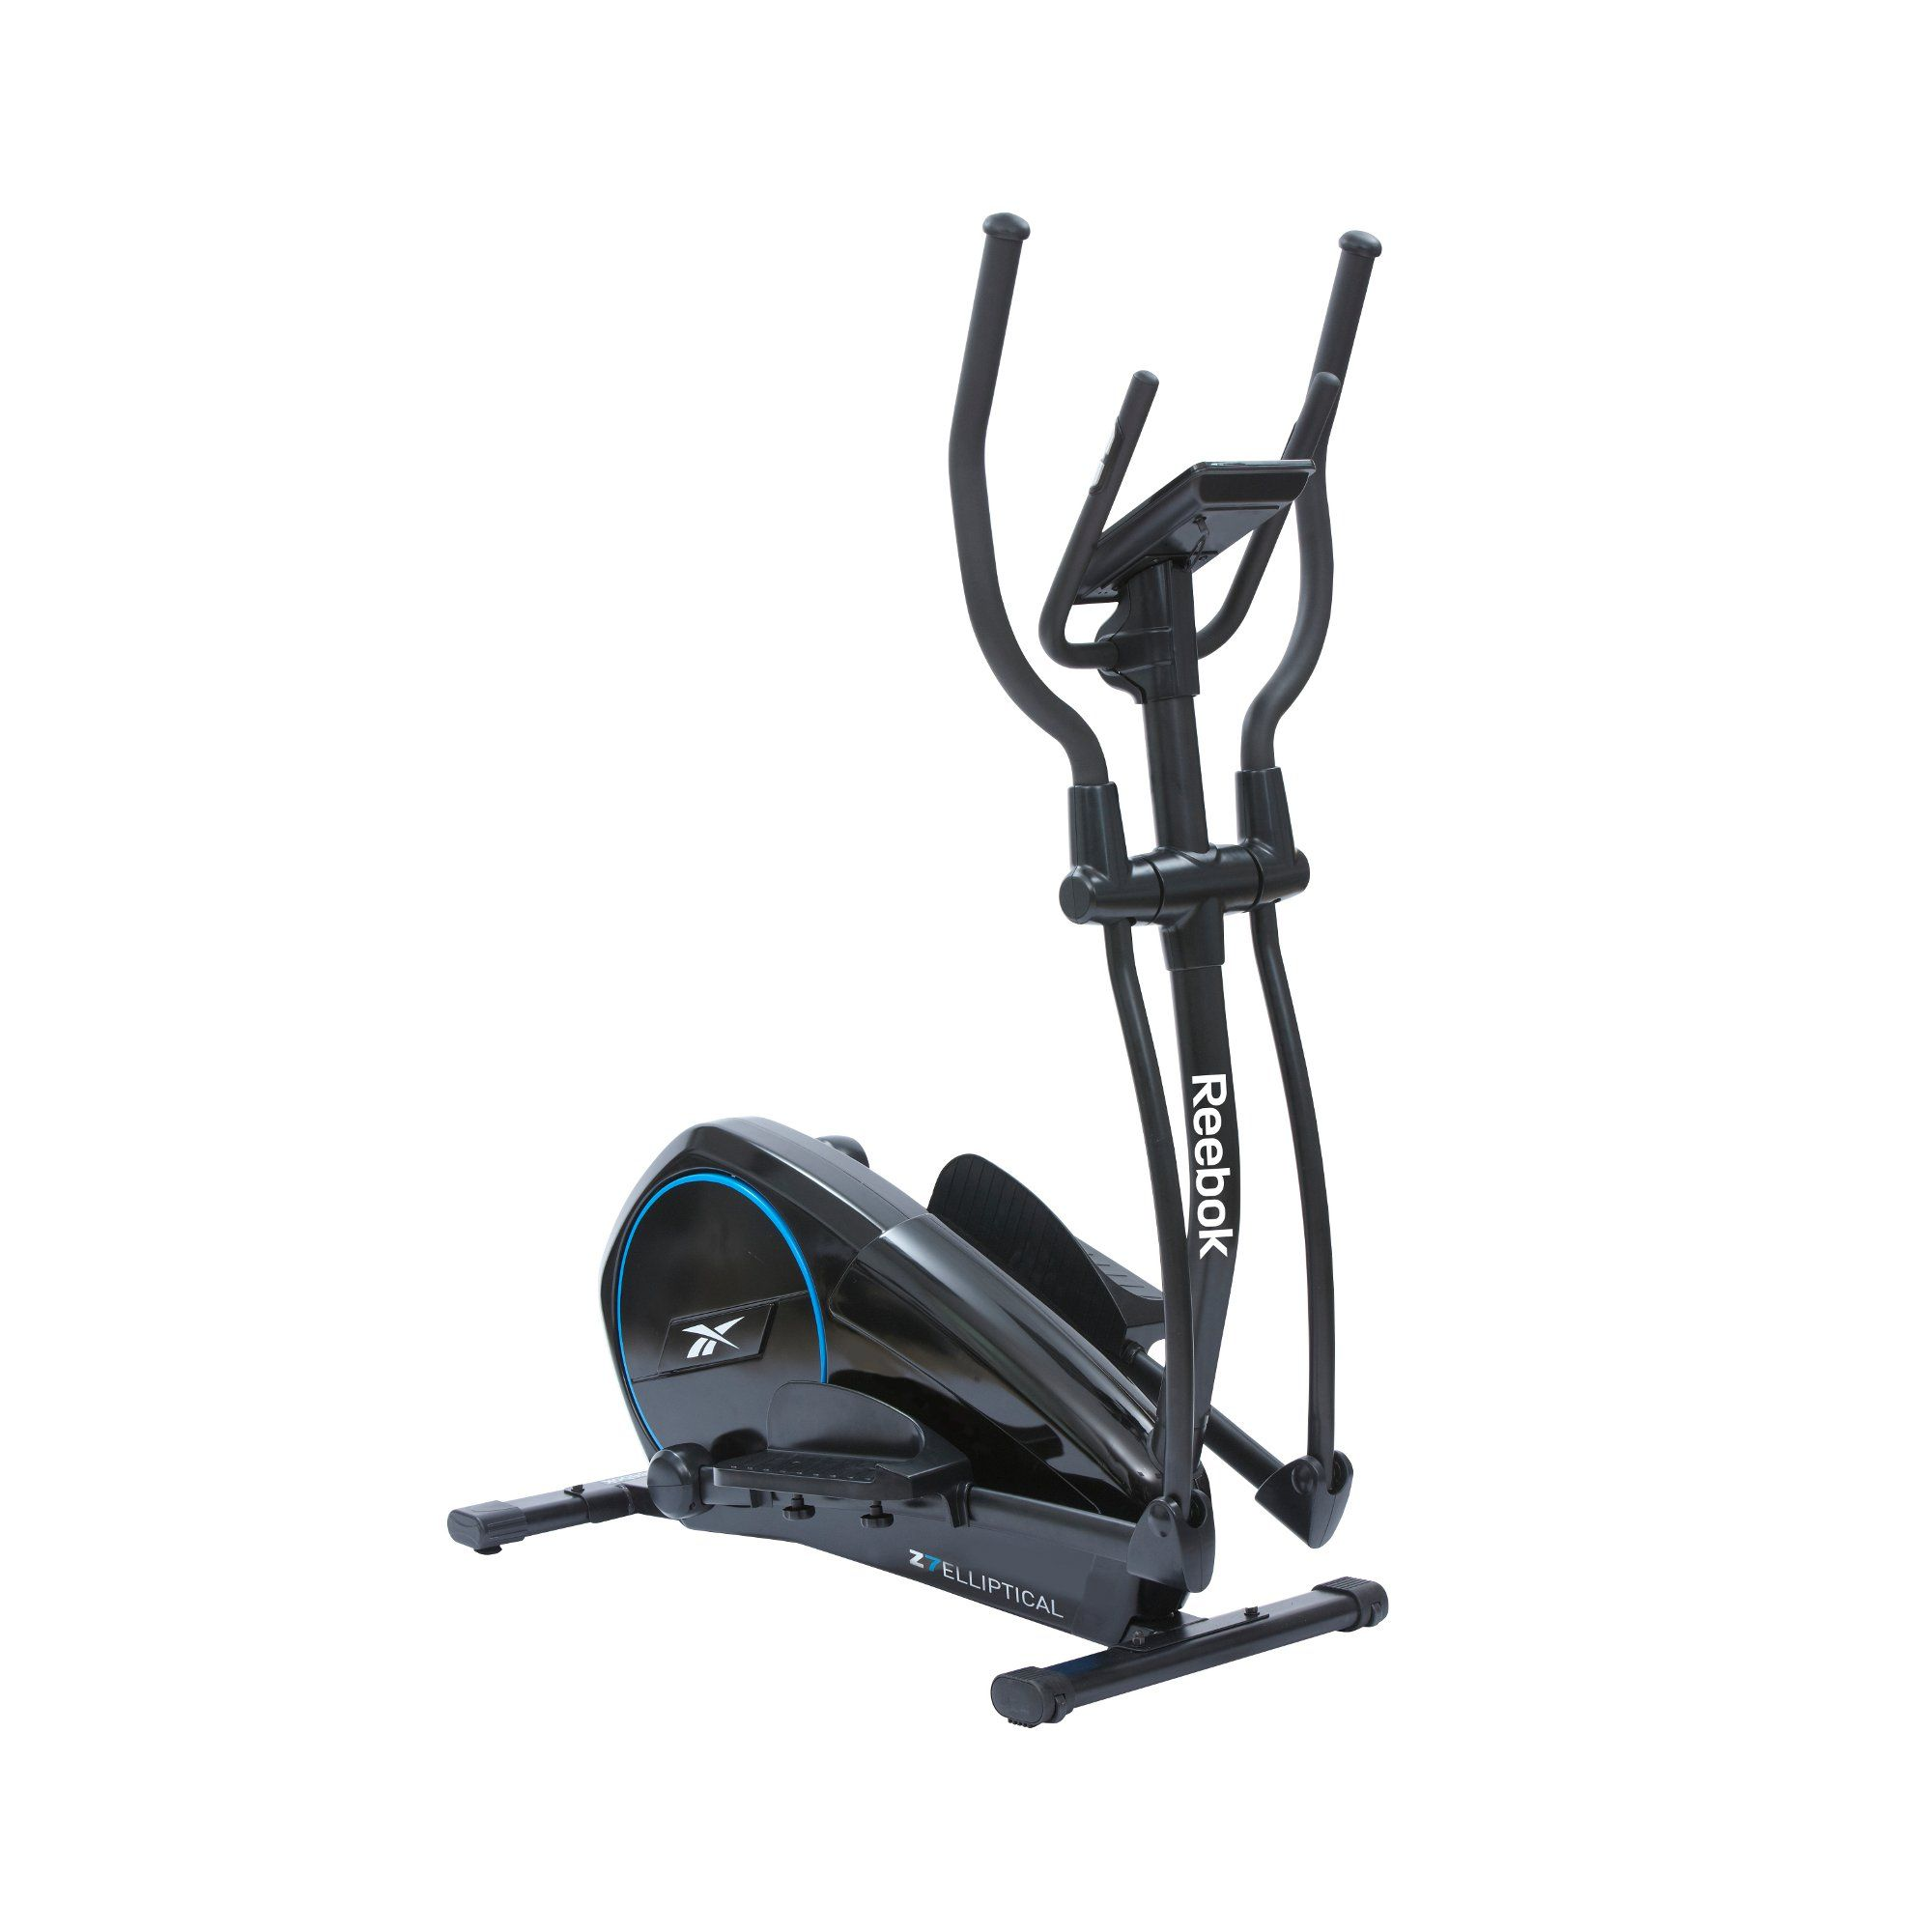 Reebok Z7 Elliptical Cross Trainer